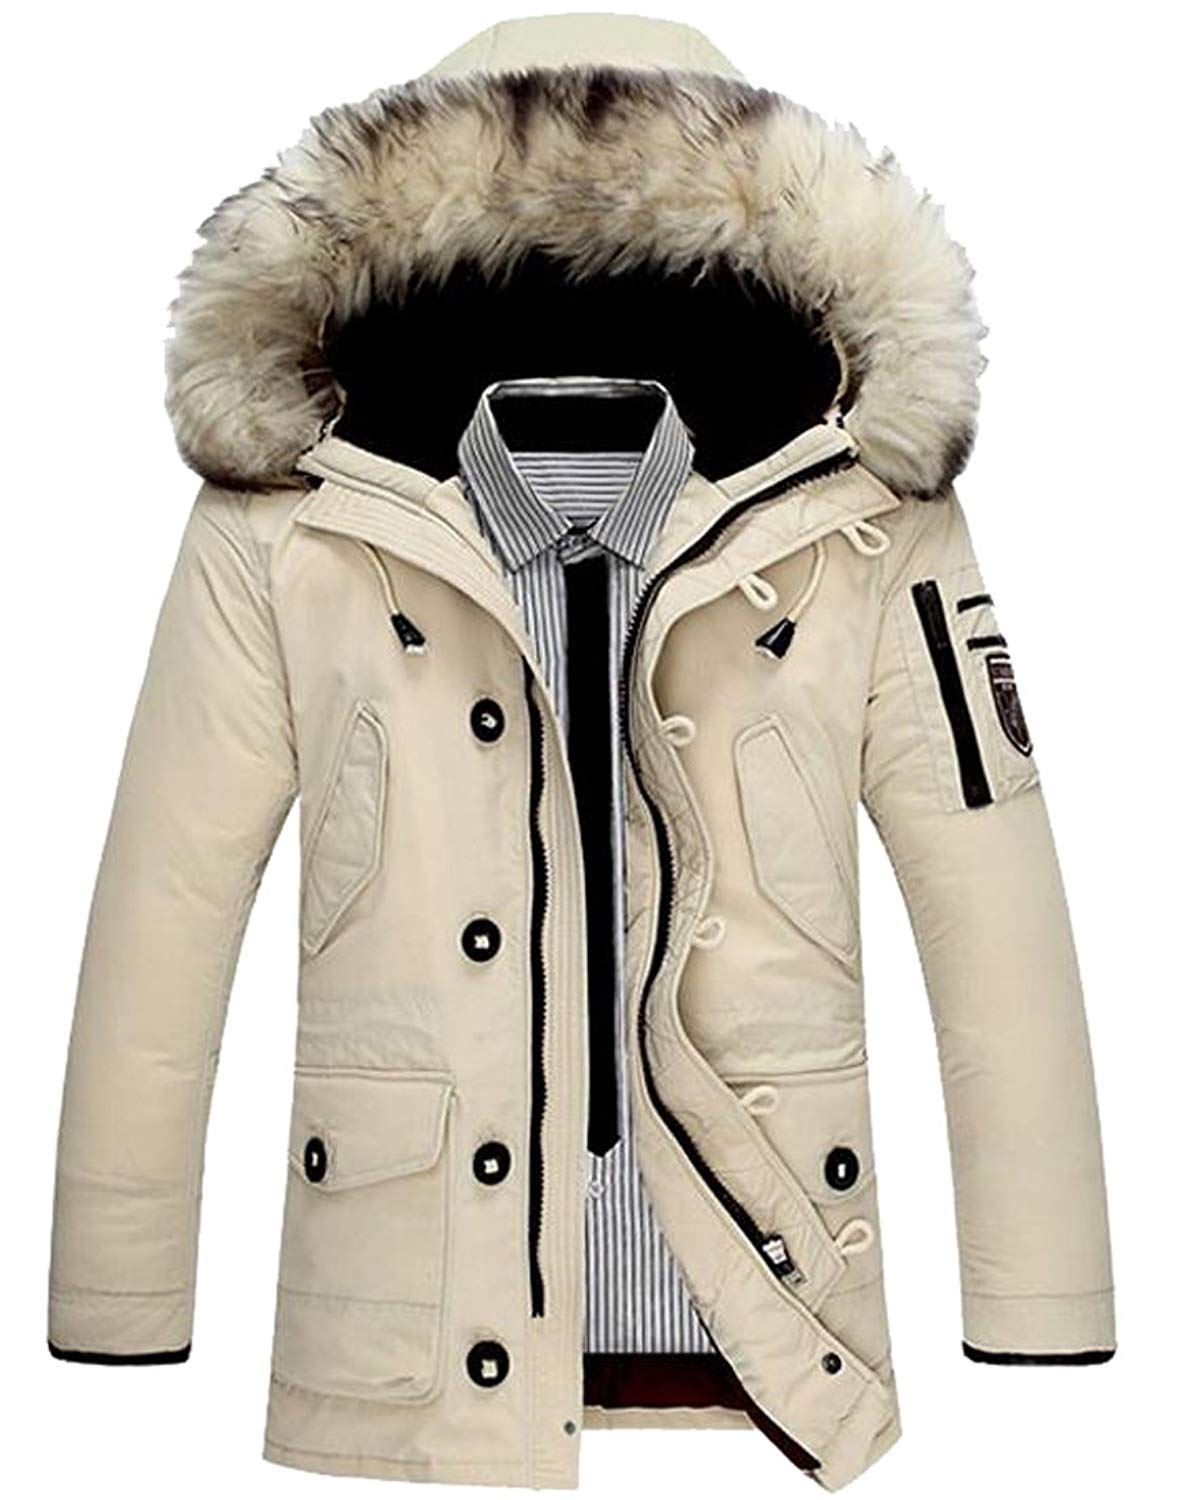 Pivaconis Mens Warm Thicken Chinese Style Quilted Down Padded Jacket